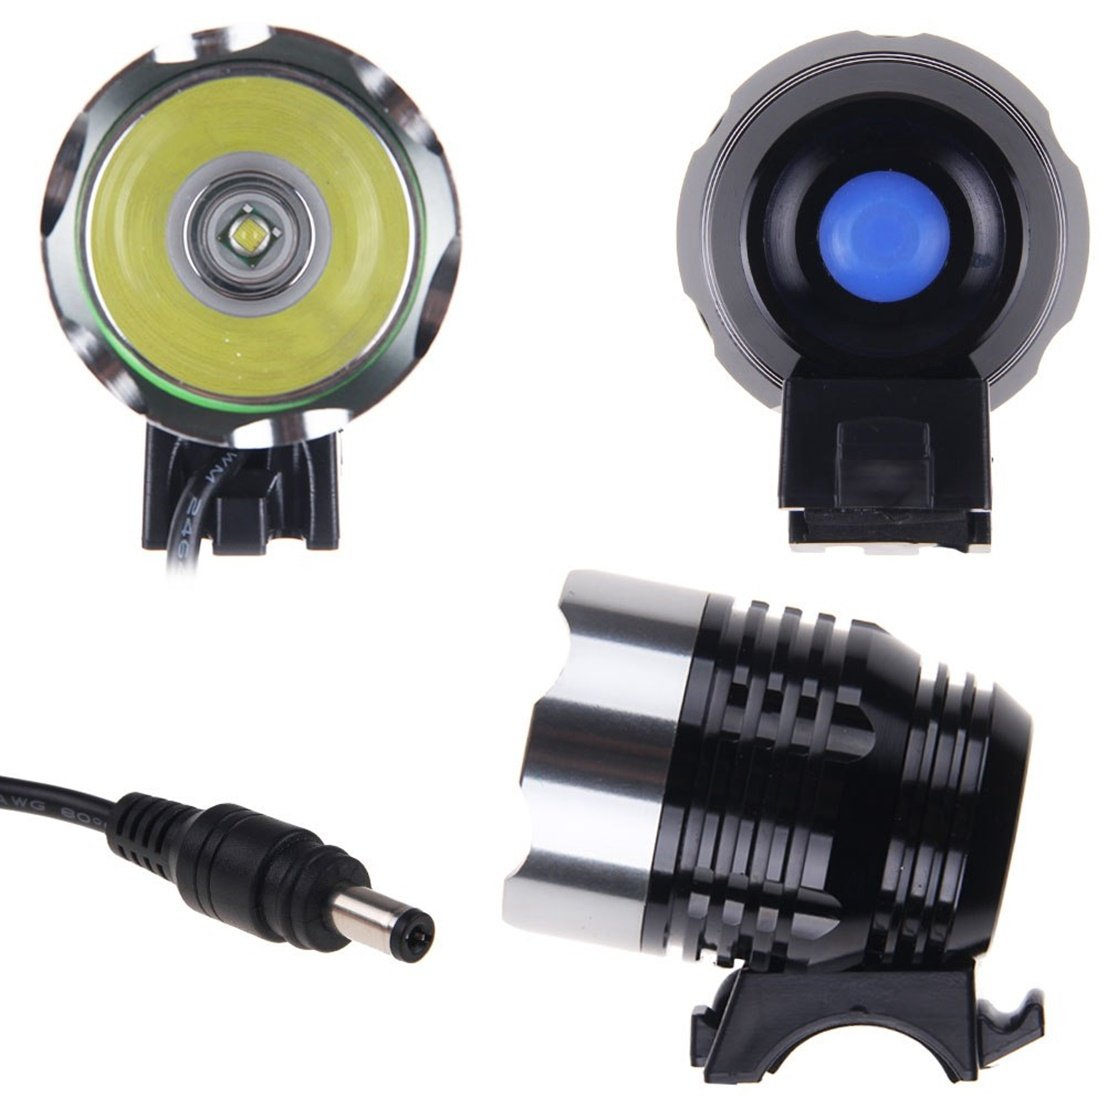 1 Pcs Extreme Popular Style 3 Modes 1800 Lumens LED Bike Lights Cycling Headlight Aluminum Torch Rechargecable Color Gray by GVGs Shop